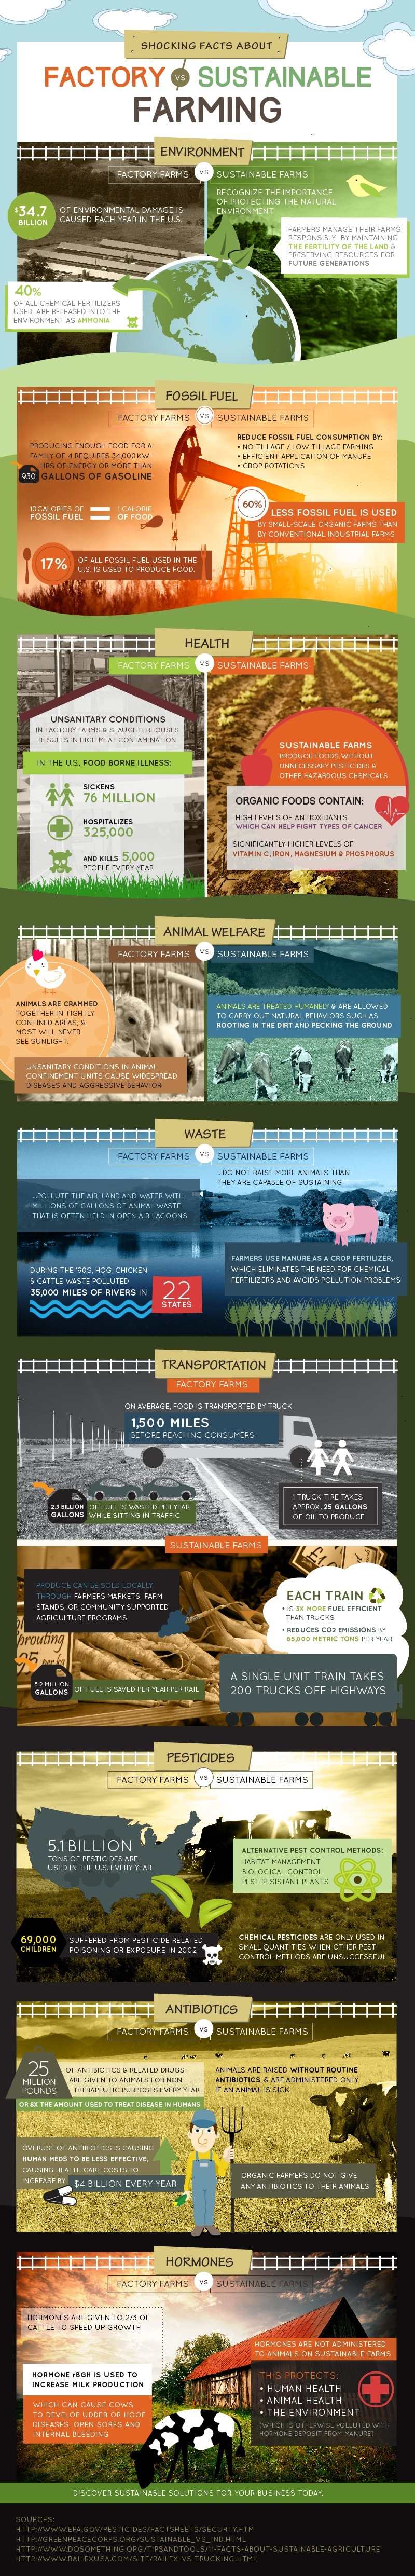 Shocking Facts About Factory Farming vs. Sustainable Farming